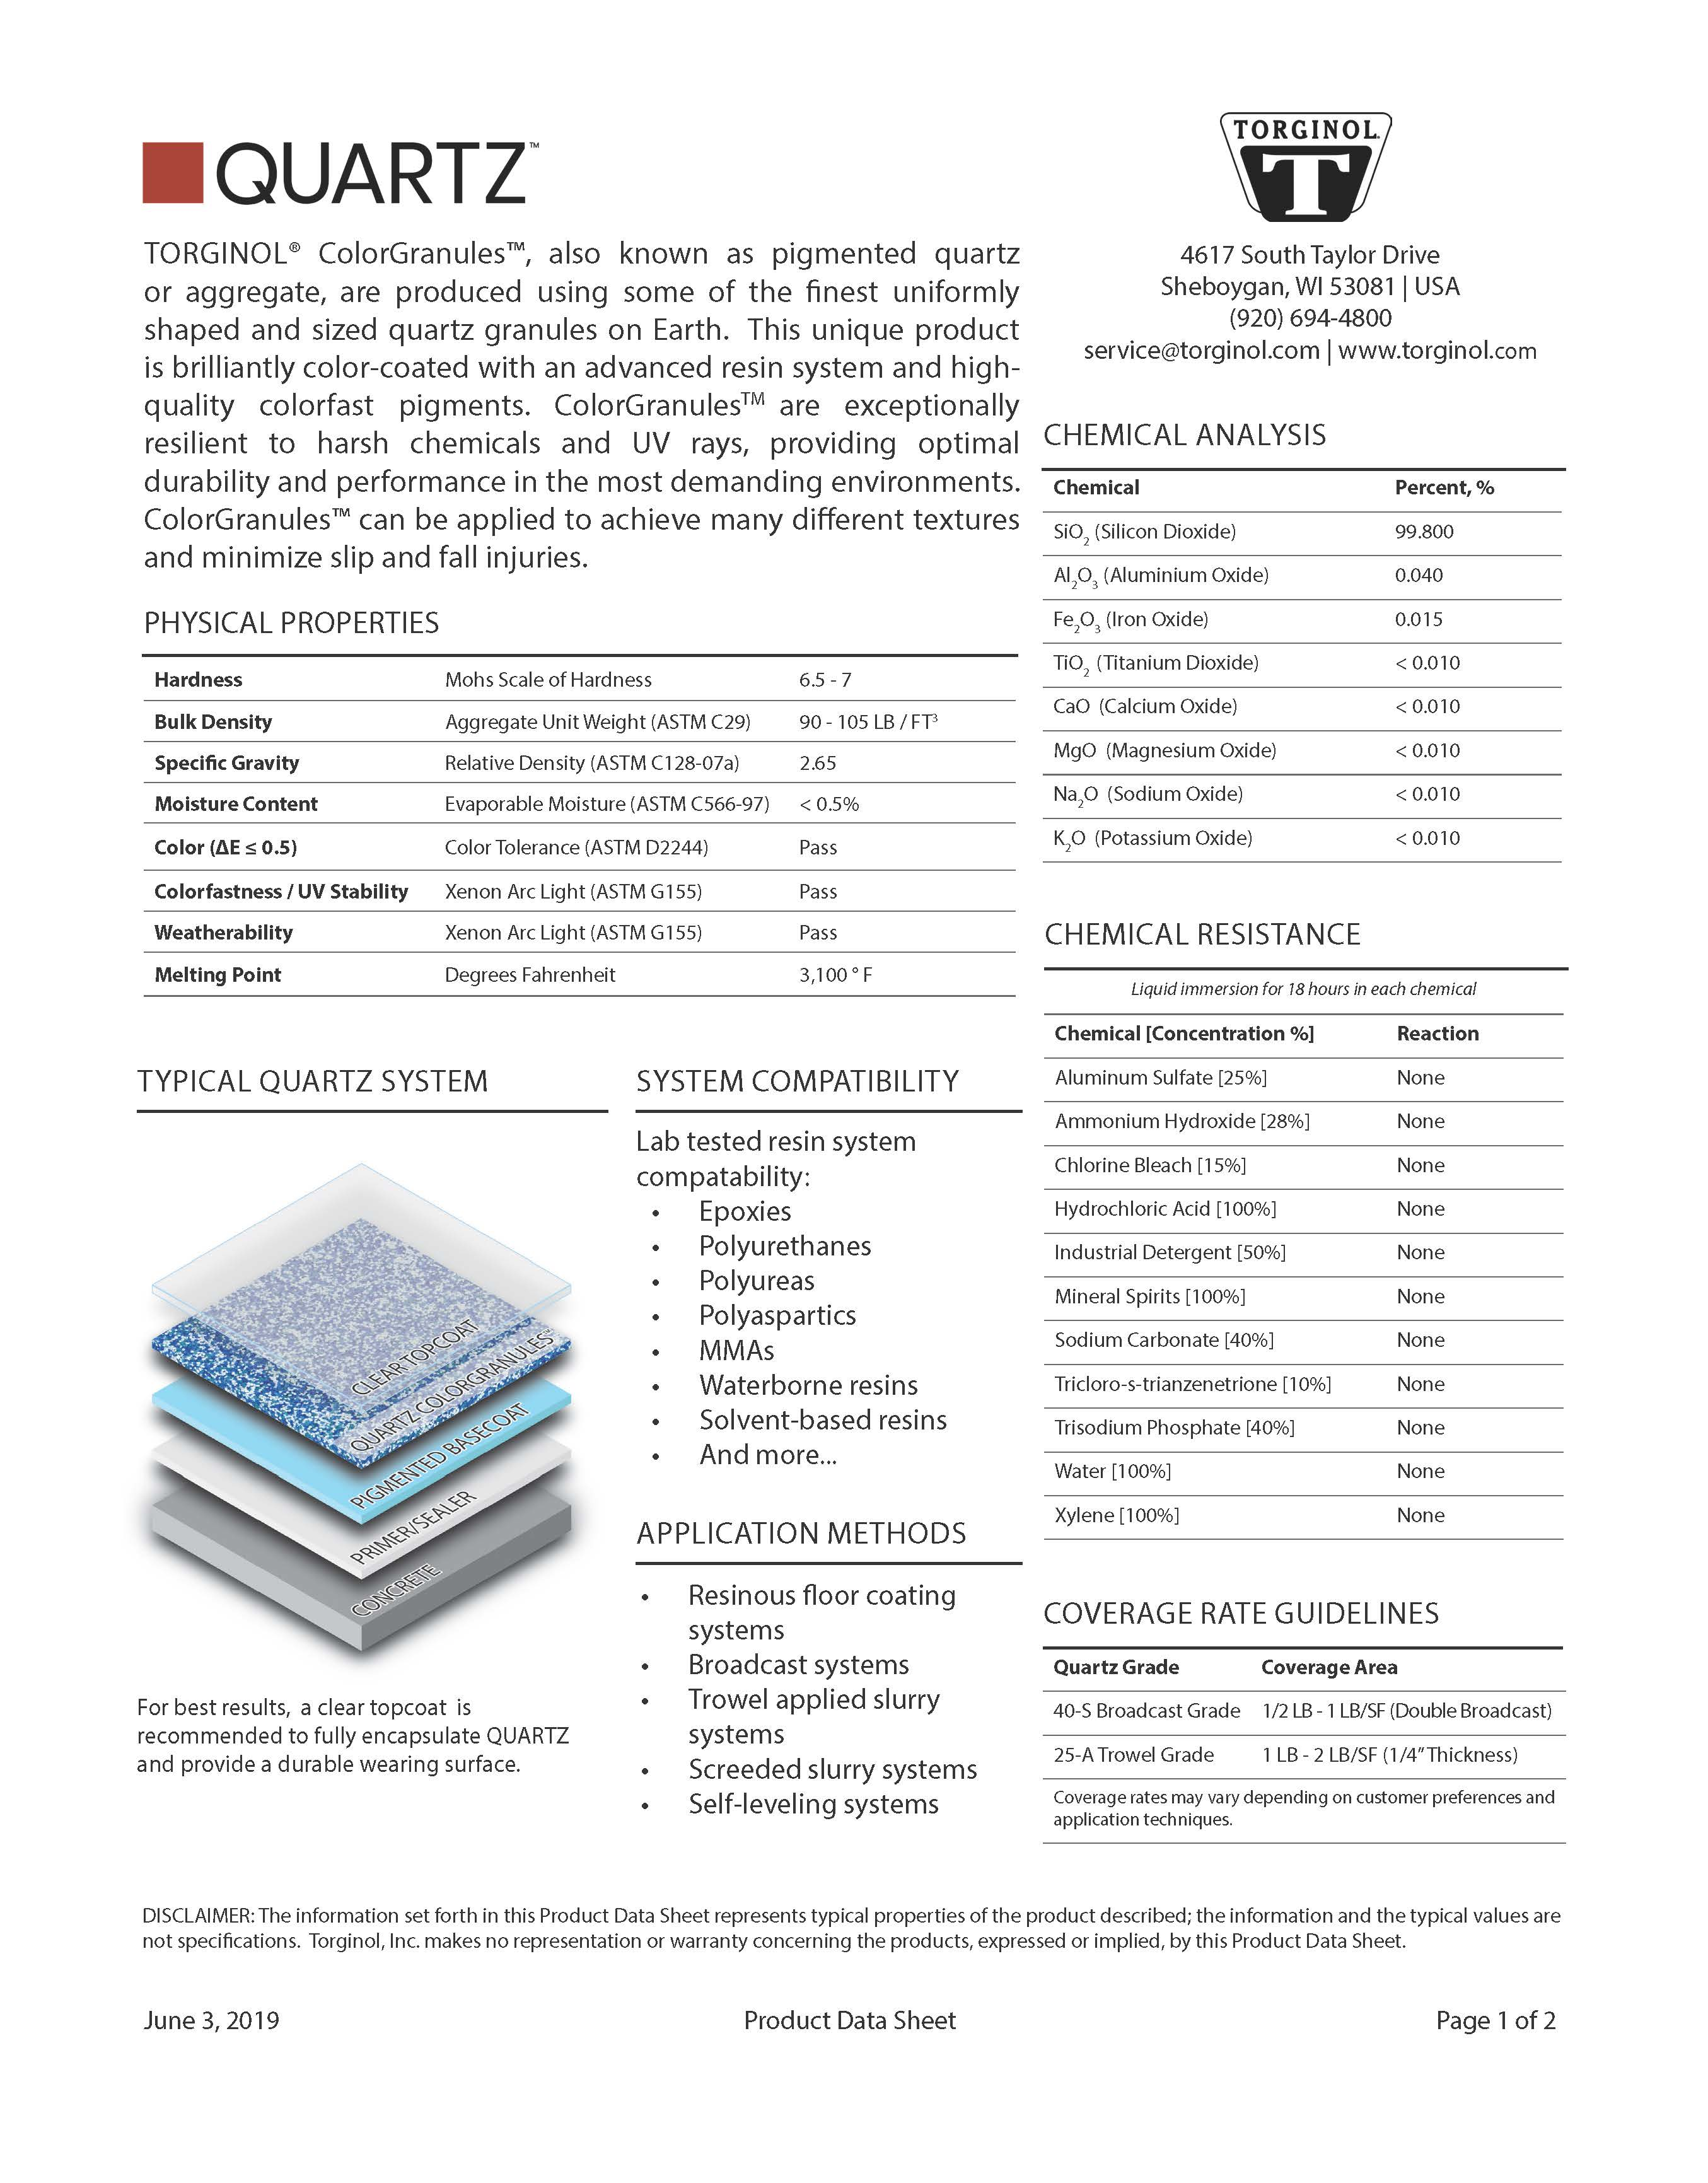 QUARTZ Technical Data Sheet